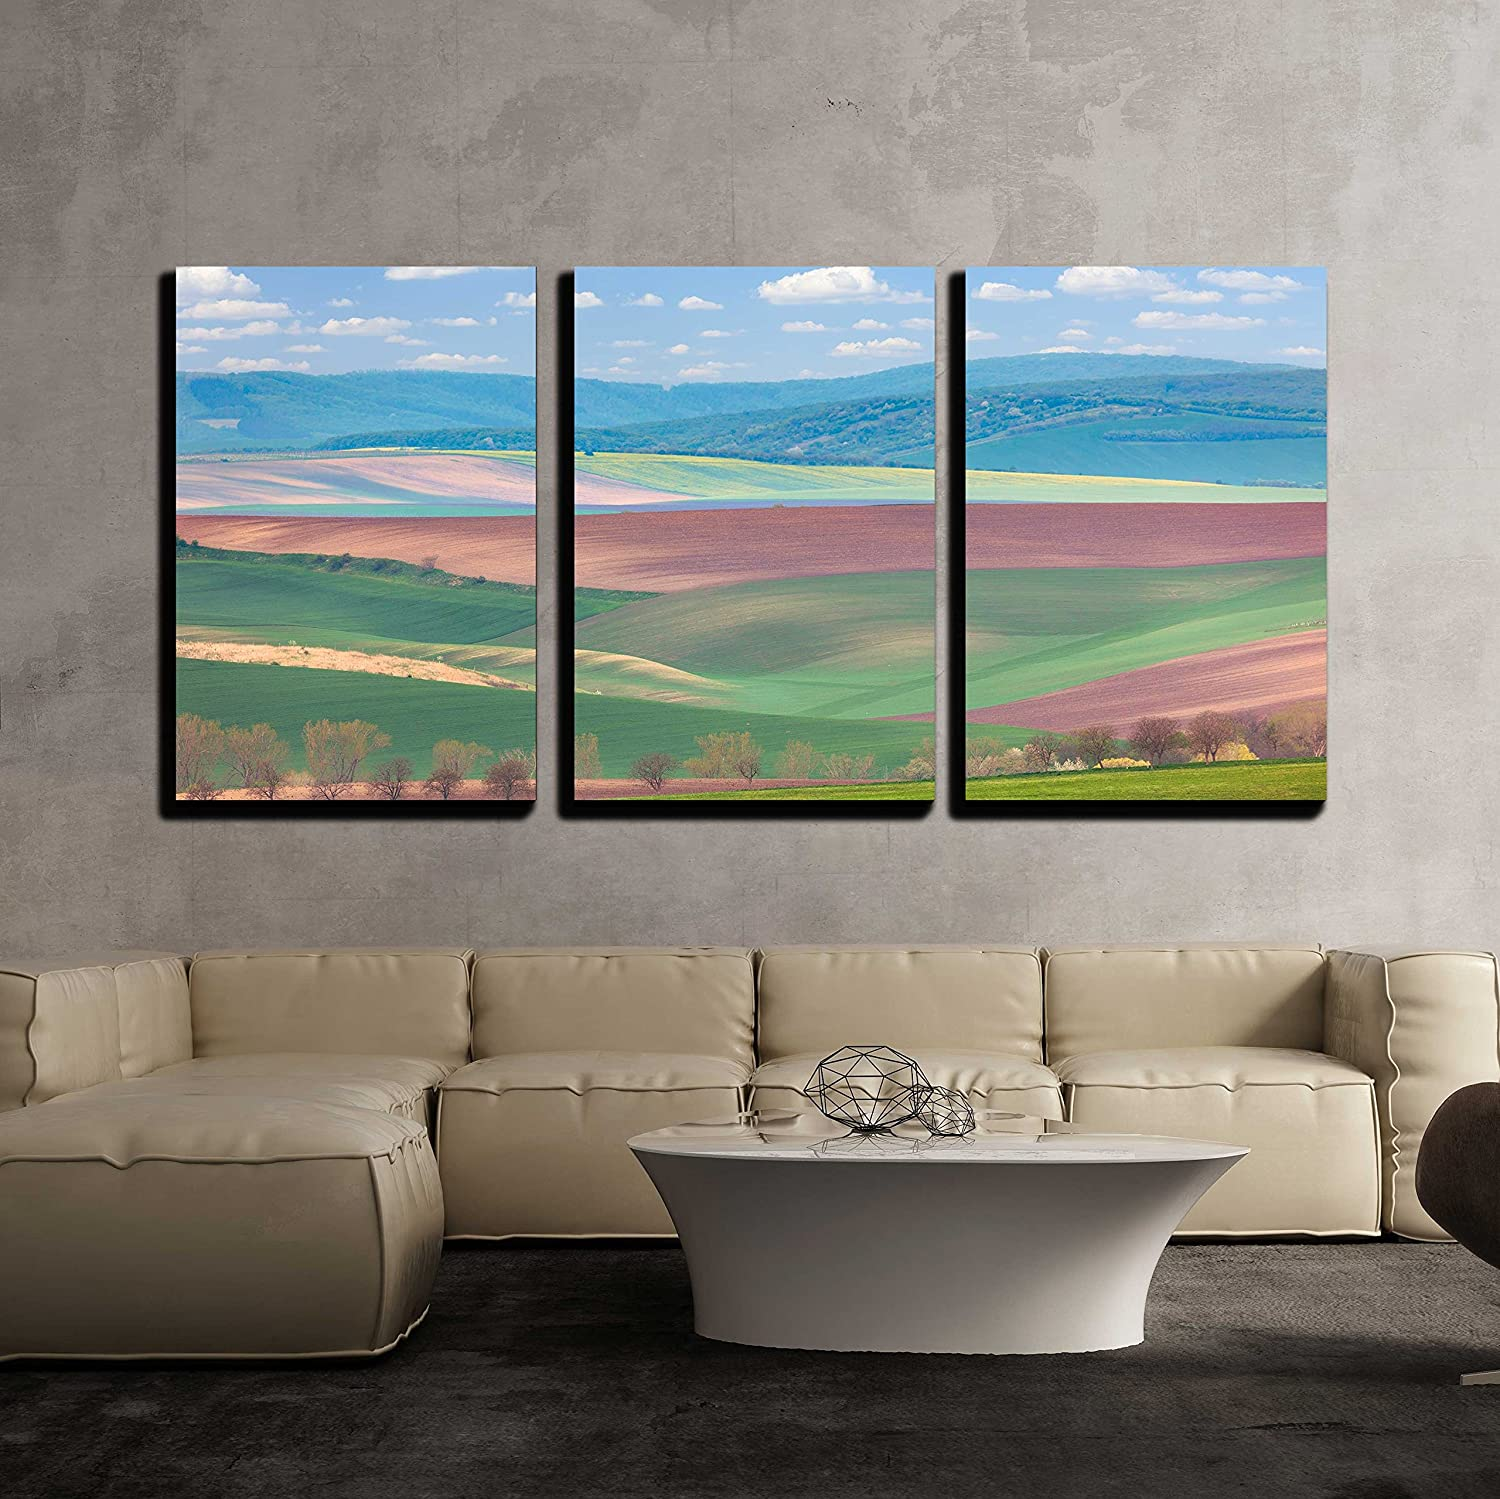 wall26 - 3 Piece Canvas Wall Art - Spring Landscape of Fields in Countryside of Hills - Modern Home Art Stretched and Framed Ready to Hang - 16x24x3 Panels